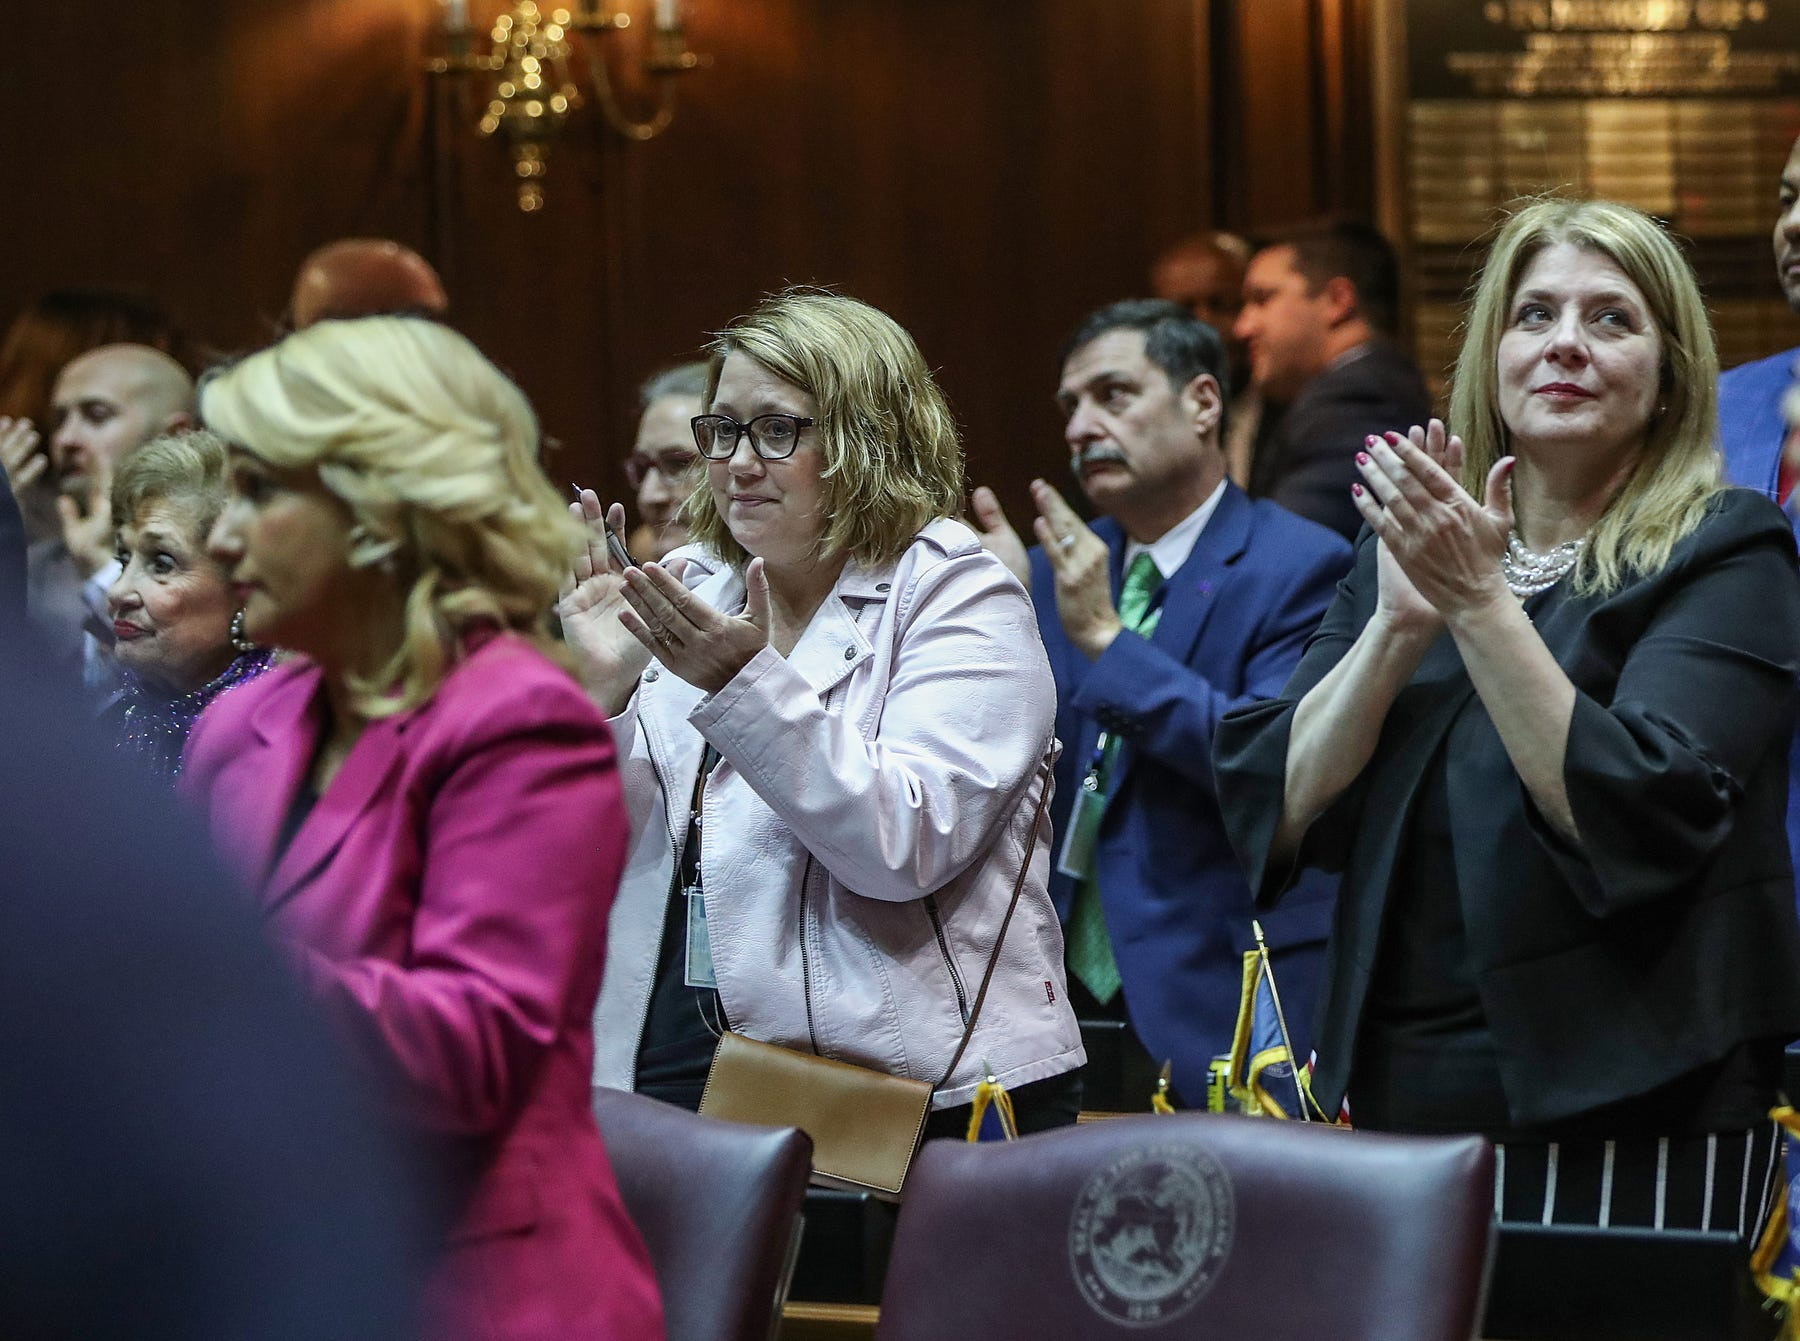 Members of the Indiana General Assembly react to Gov. Eric Holcomb's sentiment that teacher salaries should increase, during the annual State of the State address at the Indiana Statehouse in Indianapolis, Tuesday, Jan. 15, 2019.